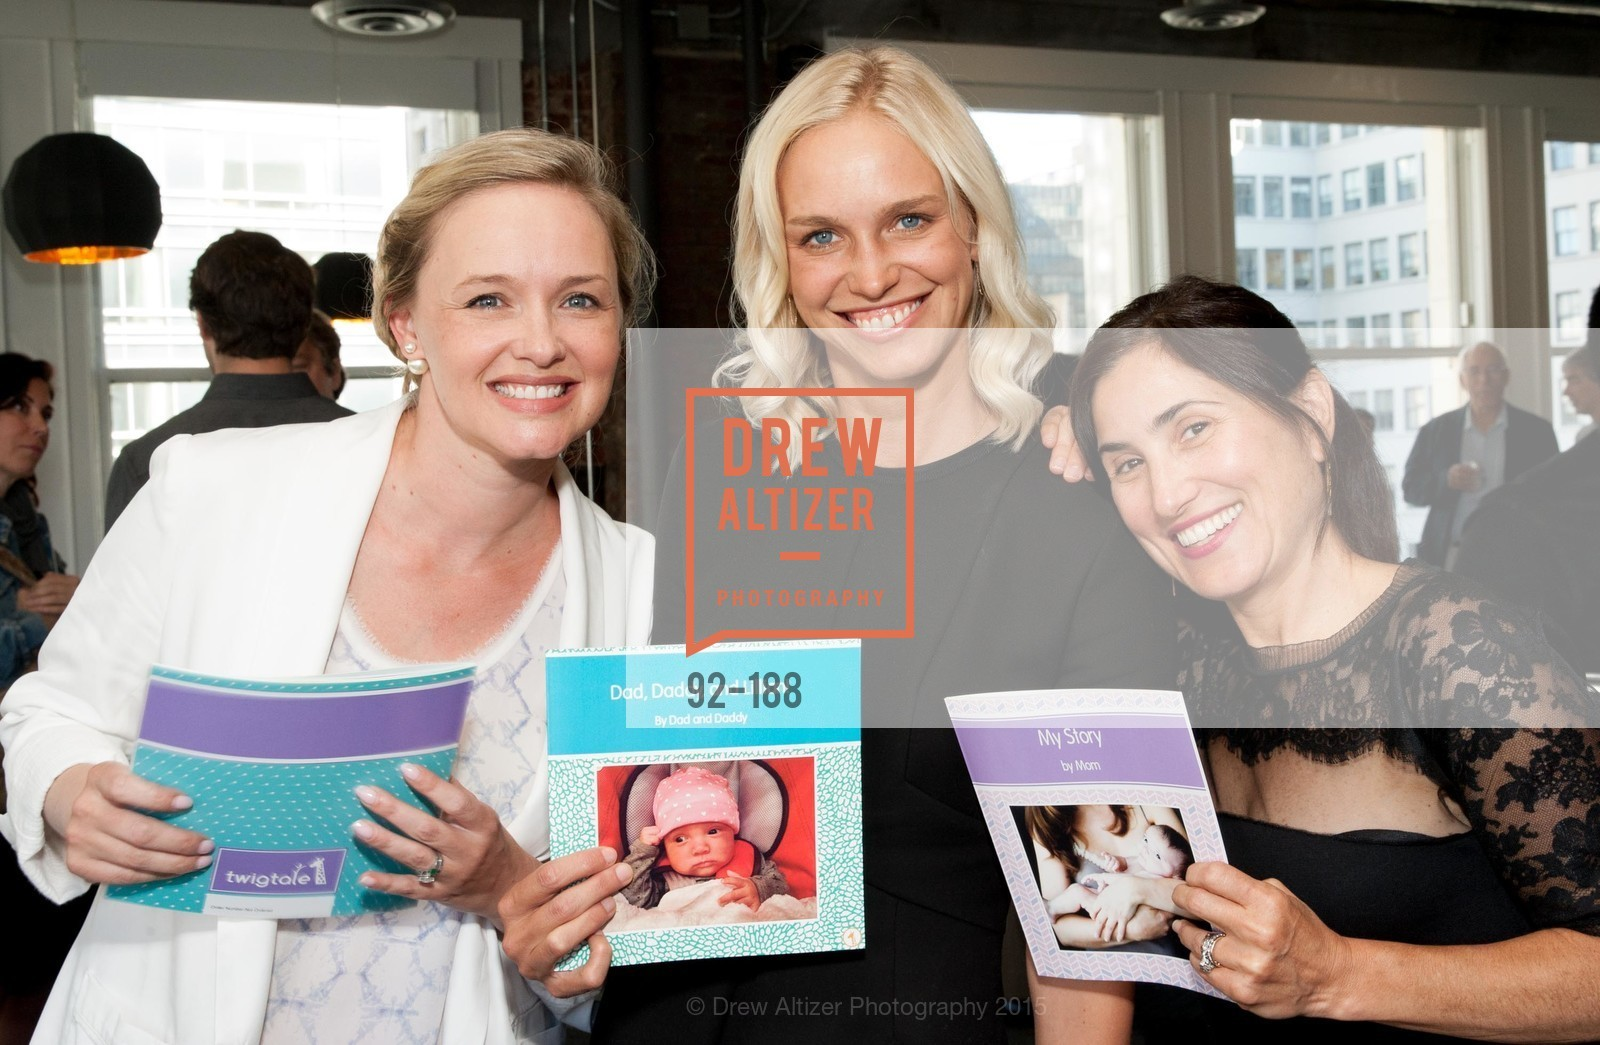 Carrie Southworth, Cathy McLain, Lucy Page, Twigtale Celebration Hosted By Zem Joaquin, Medium. 760 Market St, June 24th, 2015,Drew Altizer, Drew Altizer Photography, full-service agency, private events, San Francisco photographer, photographer california